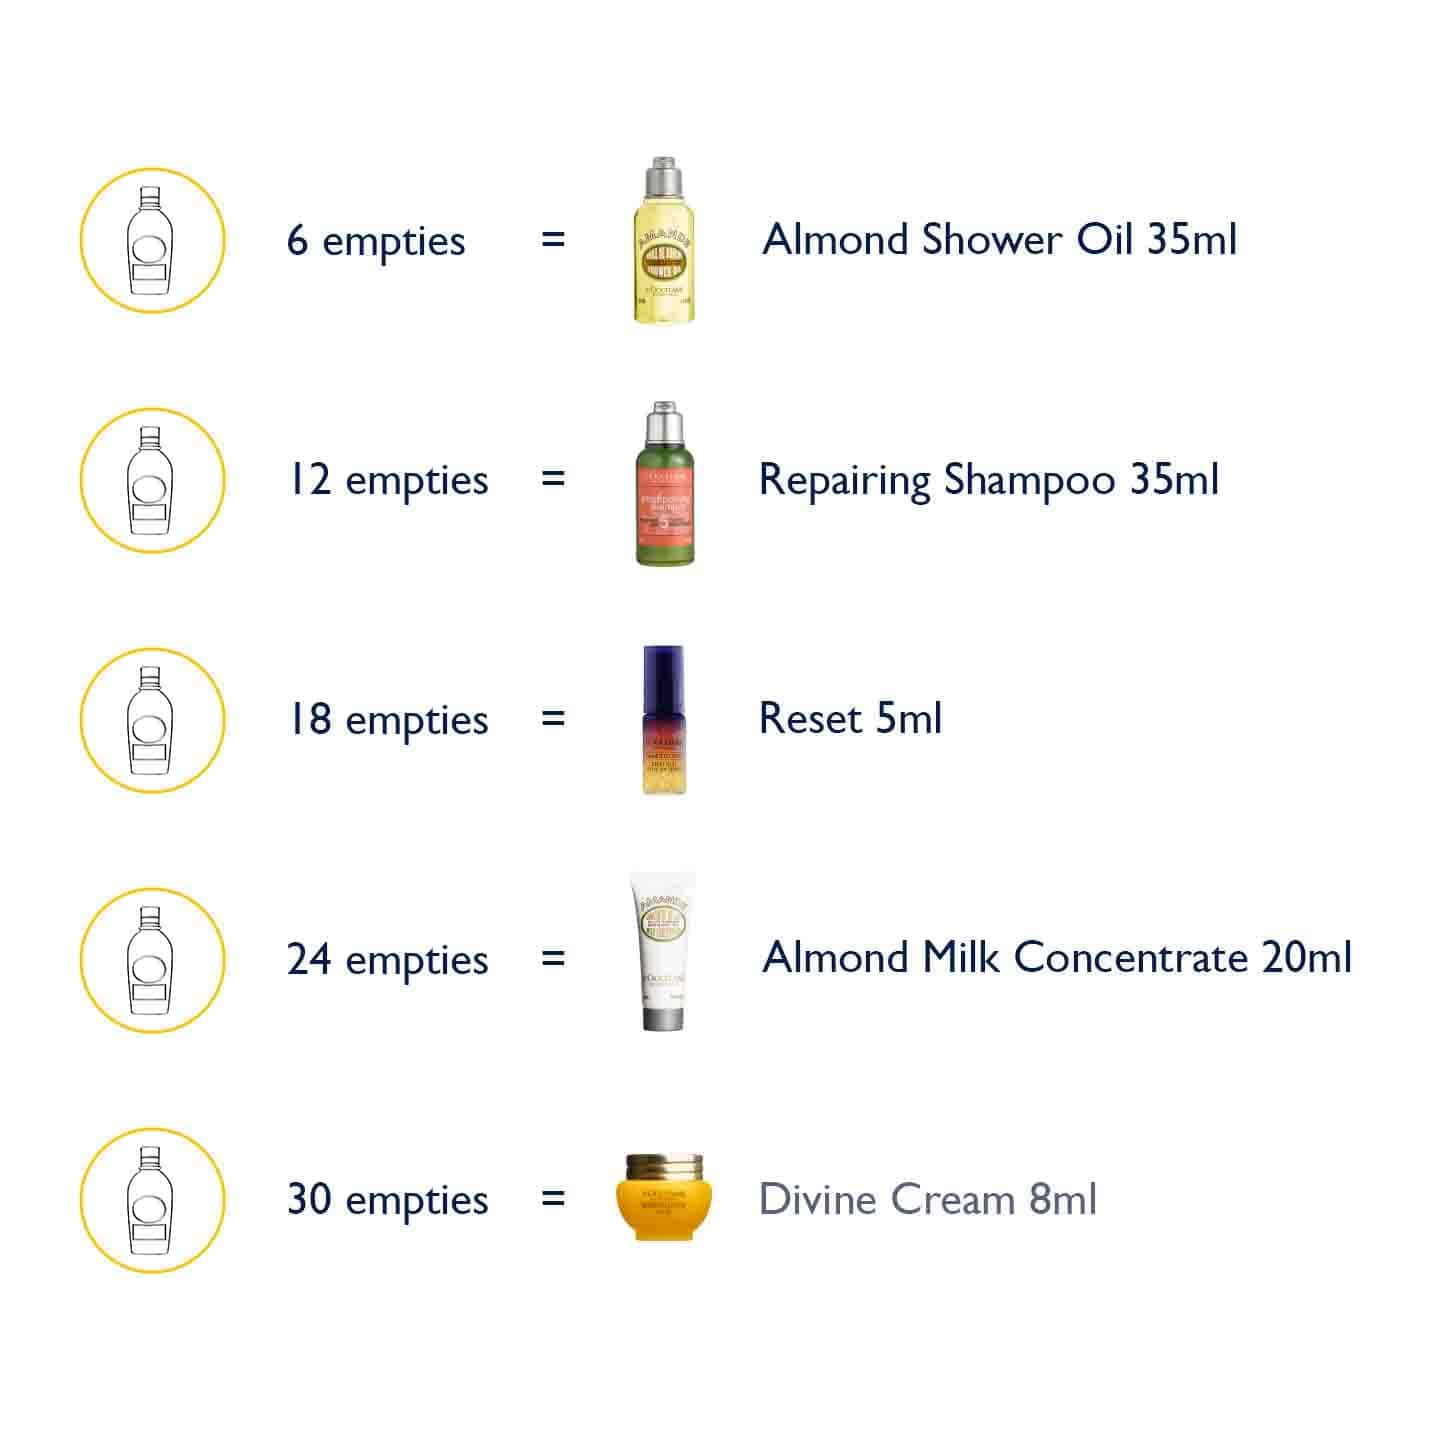 Image adapted from L'Occitane Malaysia Website (Apr 2019).